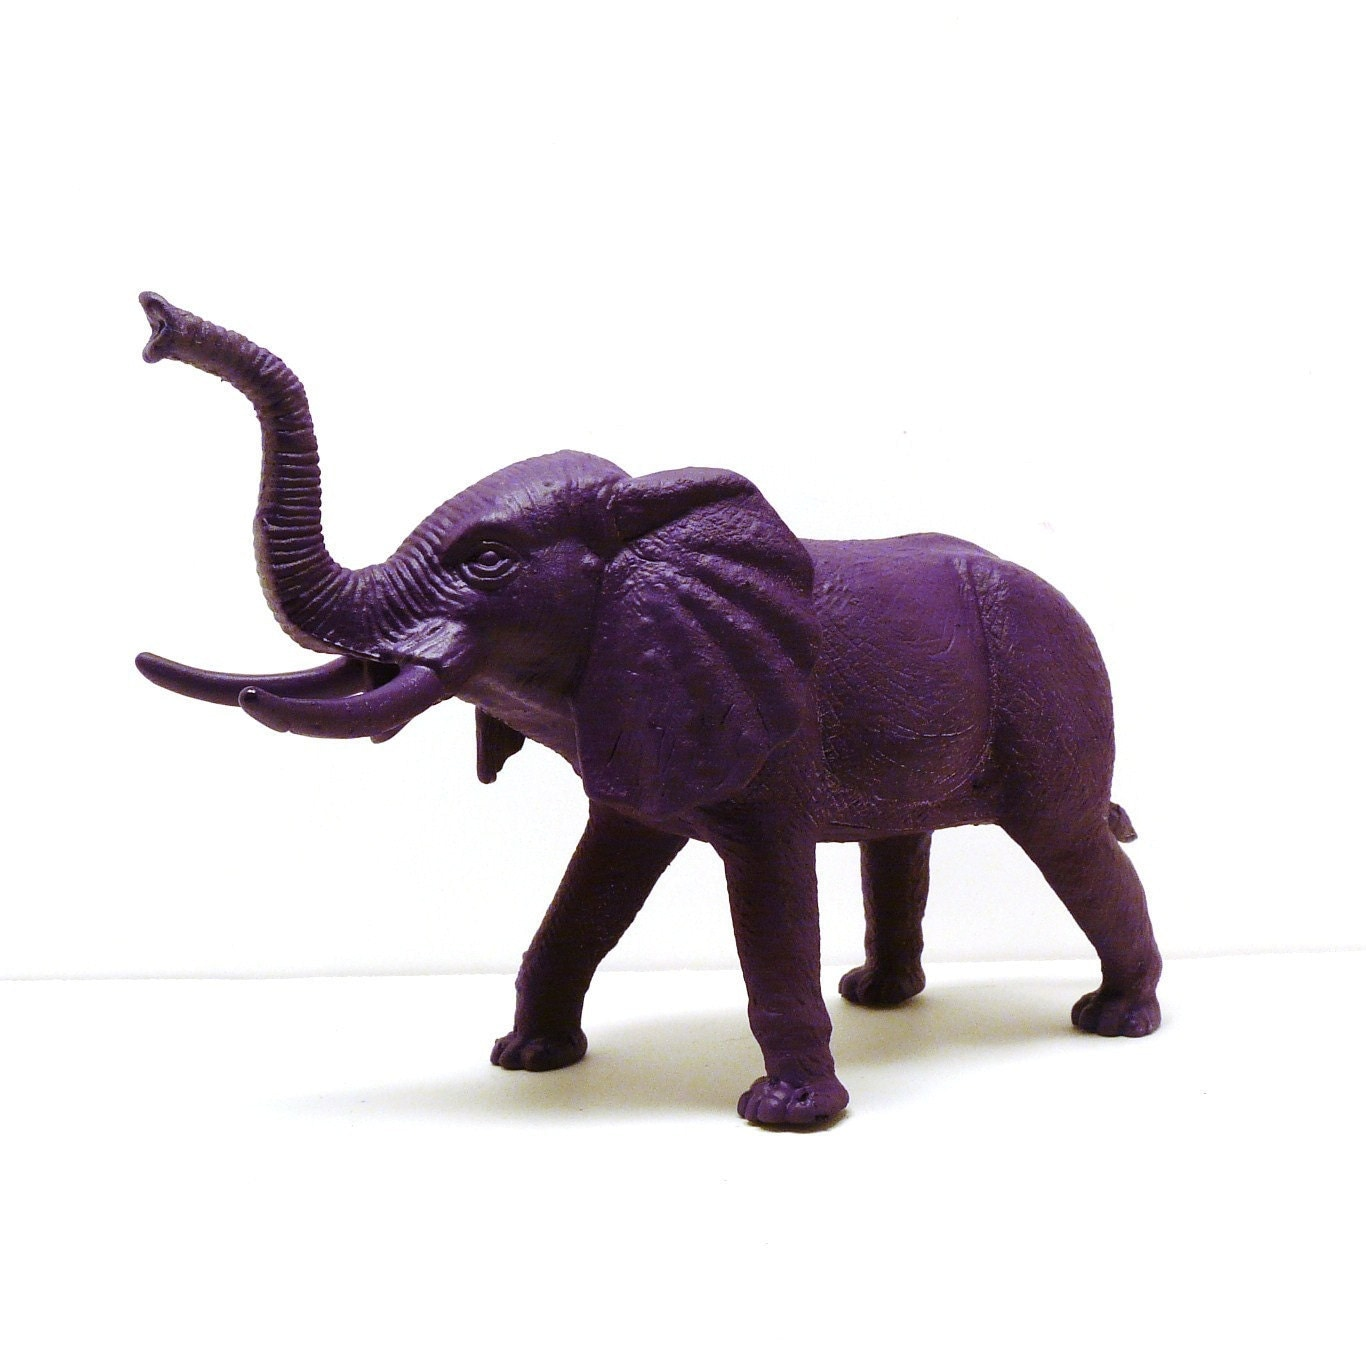 Bohemian elephant figurine violet purple home decor by nashpop African elephant home decor